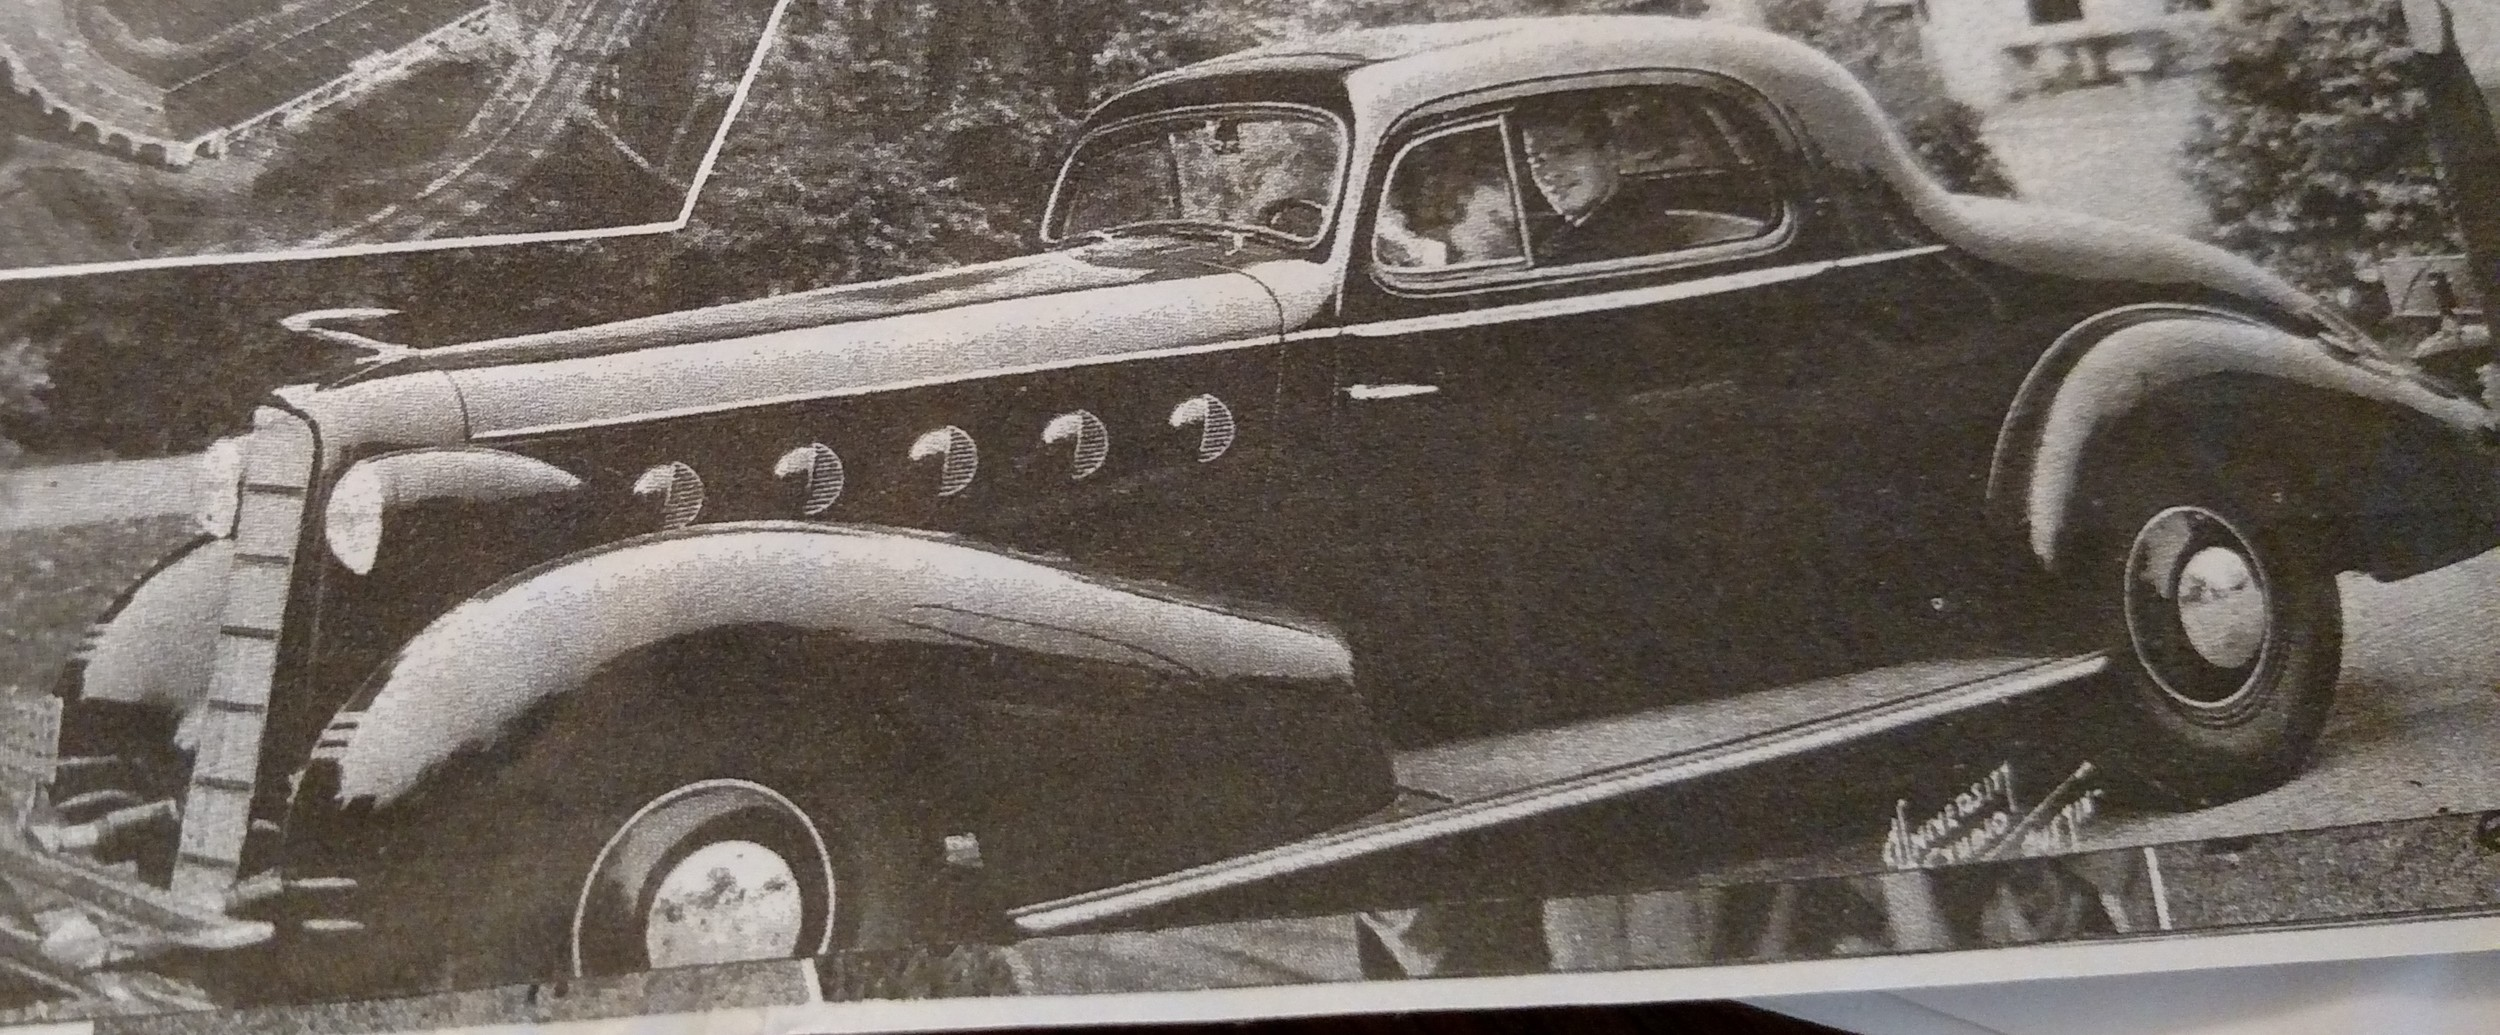 Coaches new LaSalle coupe car given to him by the Civic Testimonial Banquet attended by the Governor, the Austin mayor, UT President and 300 fans.